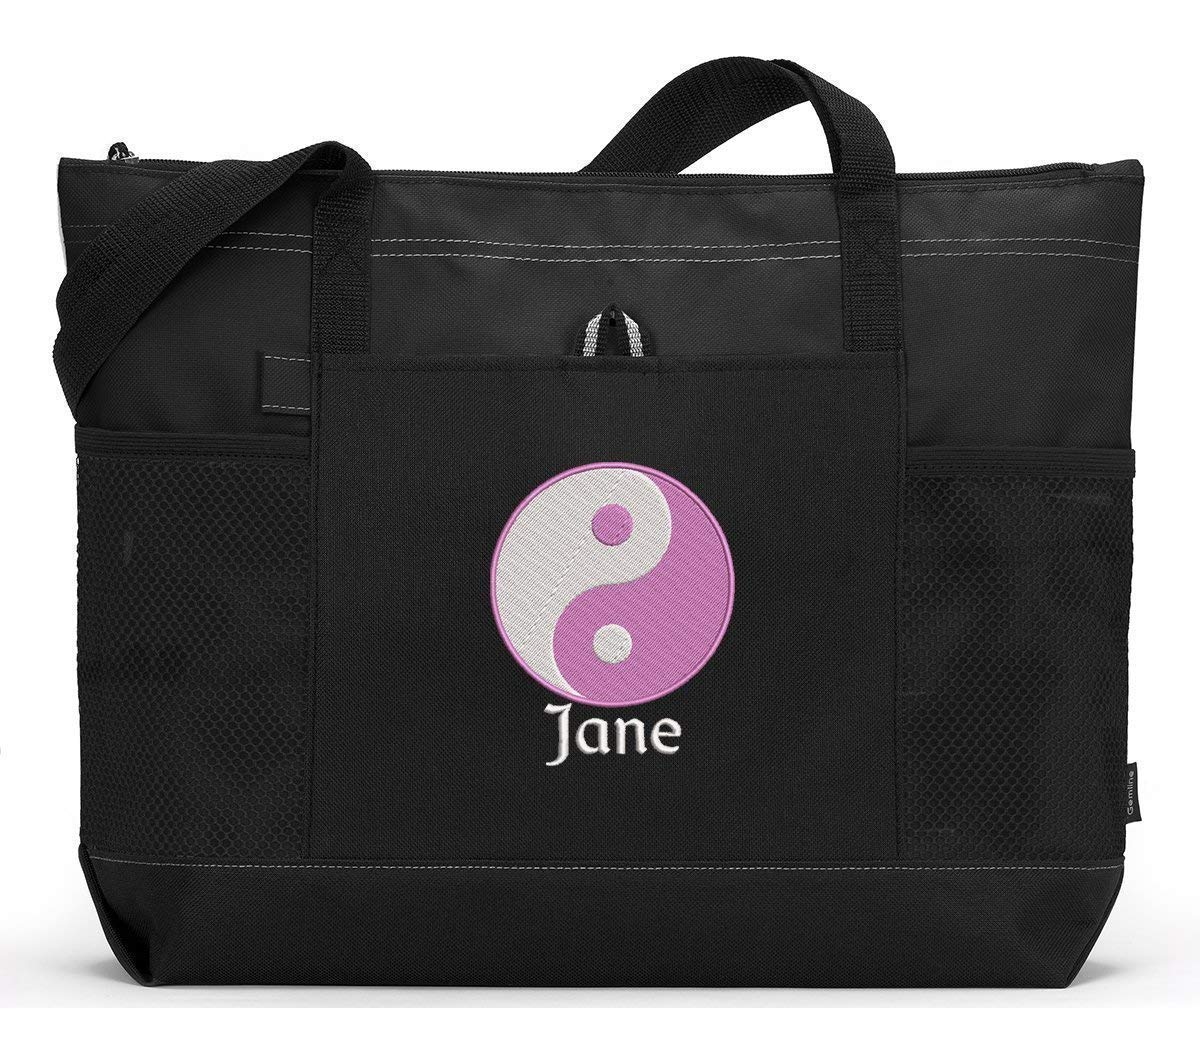 Yin Yang Popular overseas Personalized Bag Embroidered Tote Max 86% OFF